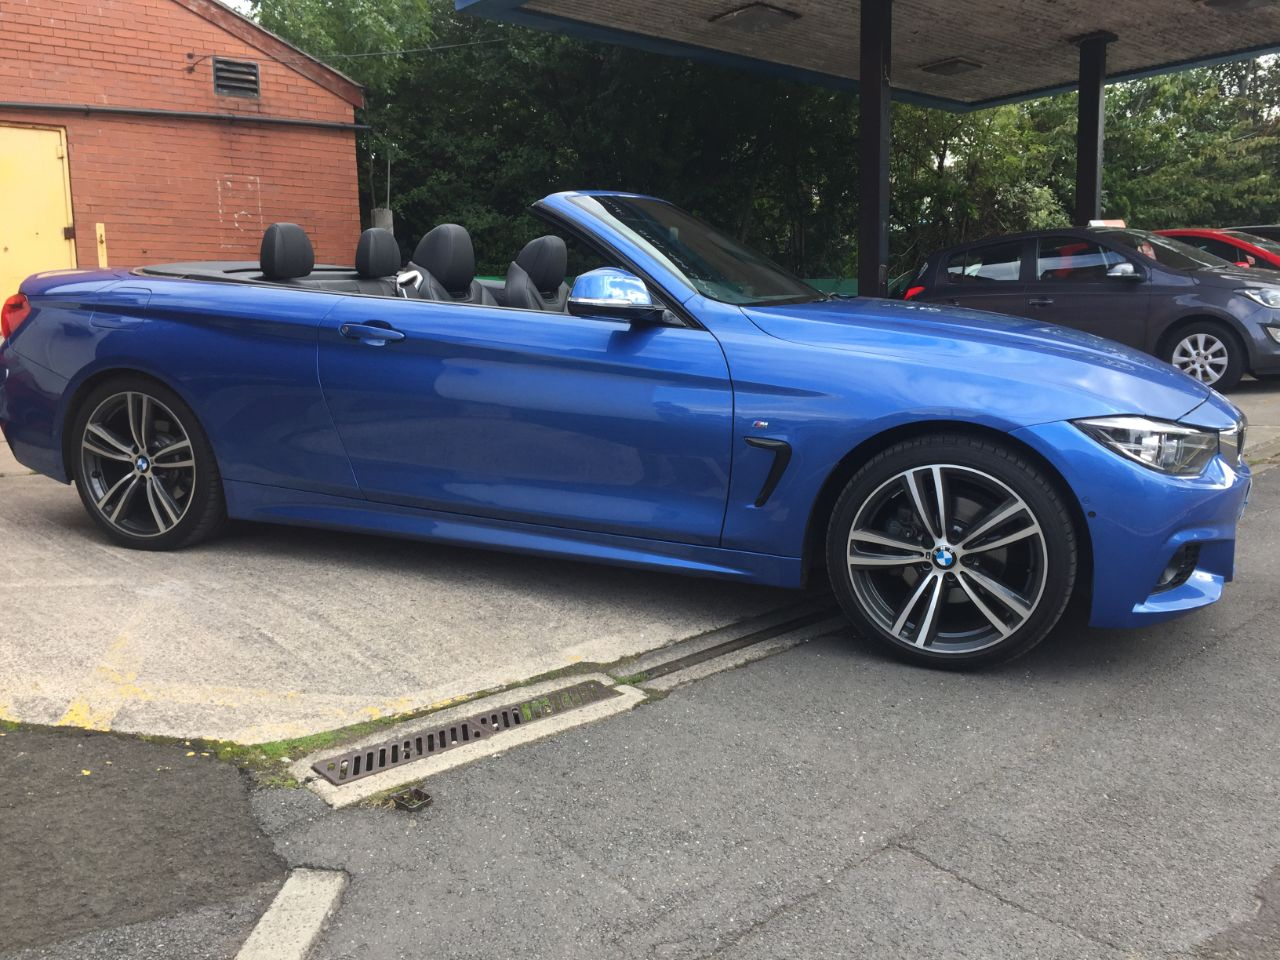 BMW 4 Series 2.0 420d [190] M Sport 2dr Auto [Professional Media] Convertible Diesel Blue at Motorhouse Cheshire Stockport